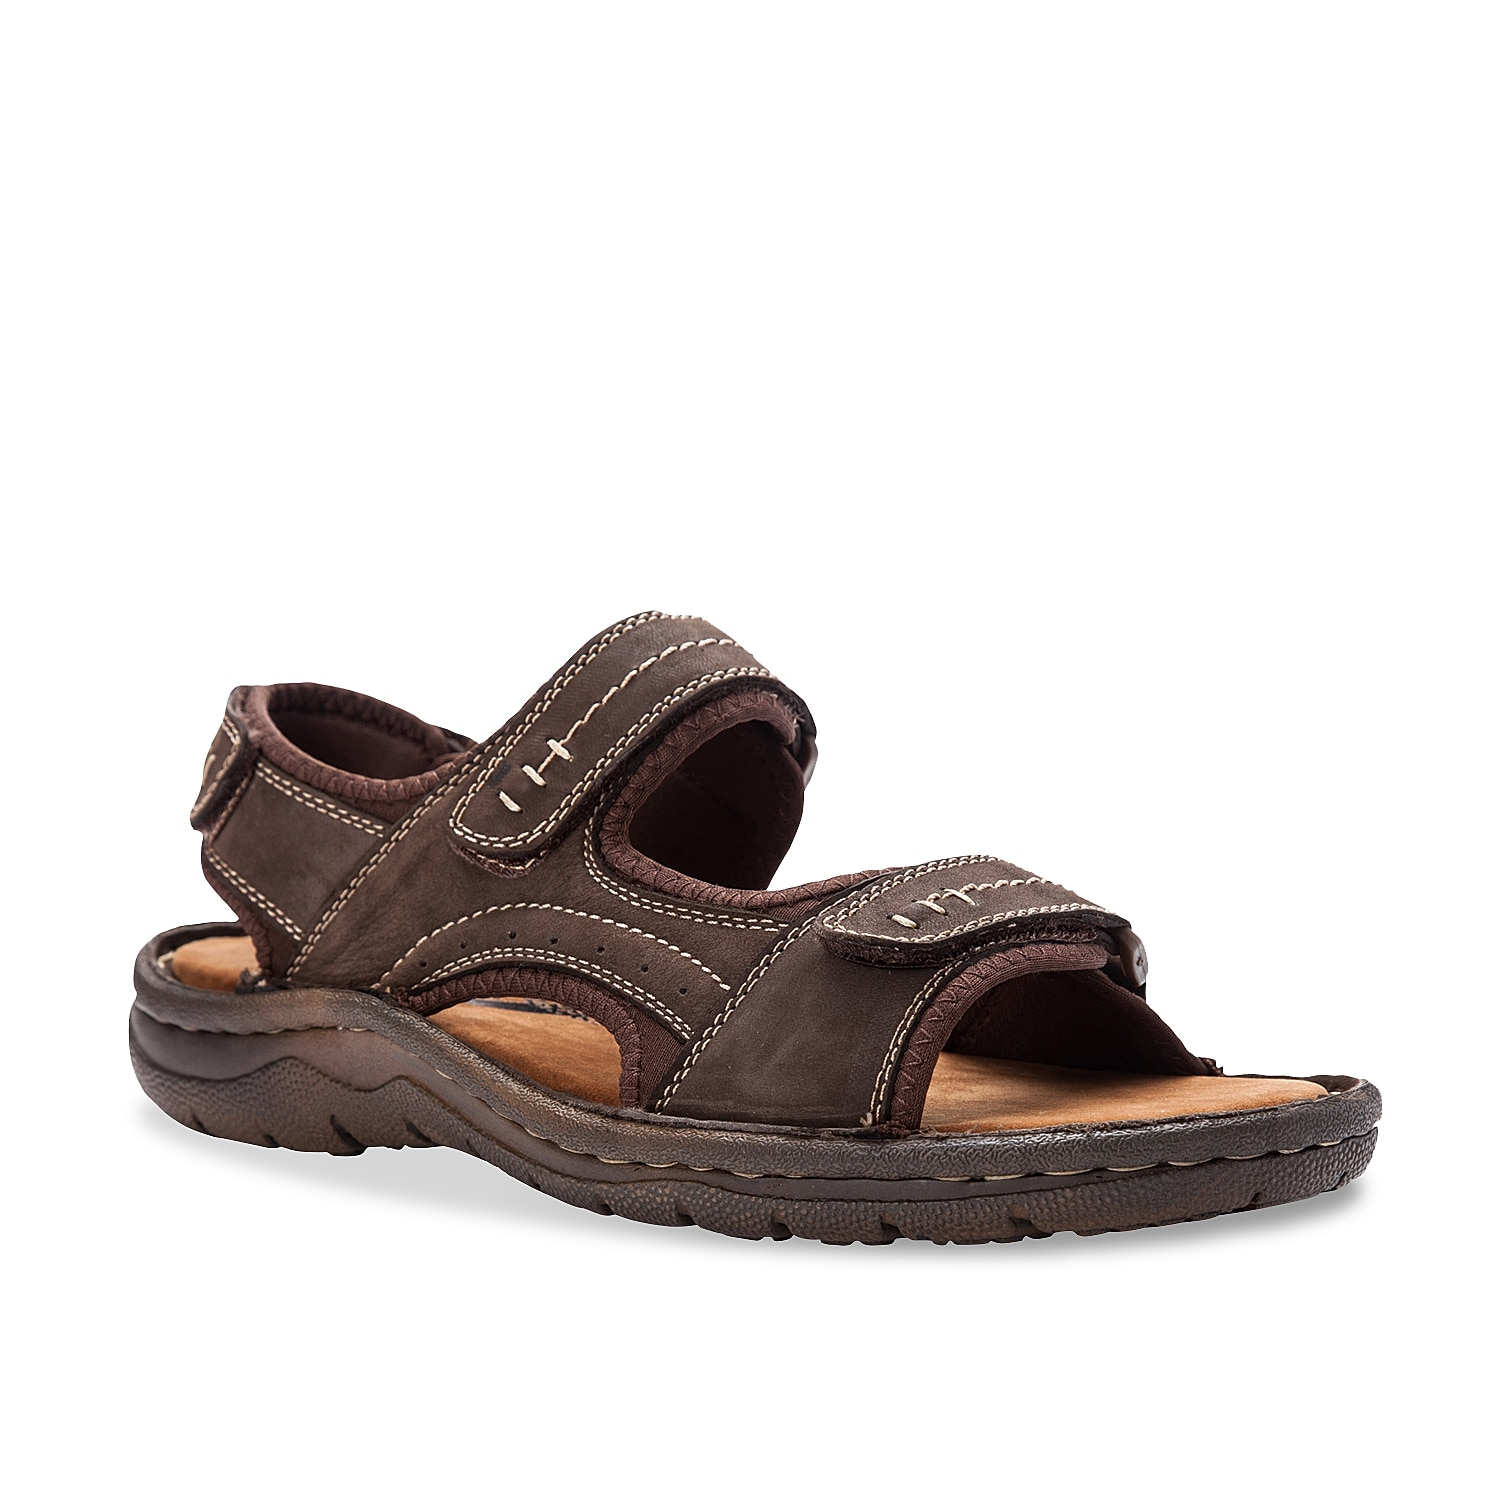 Take on any adventure in the Jordy sandal from Propet. This sturdy pair features adjustable hook and loop straps for a custom fit and a plush footbed for added ease.